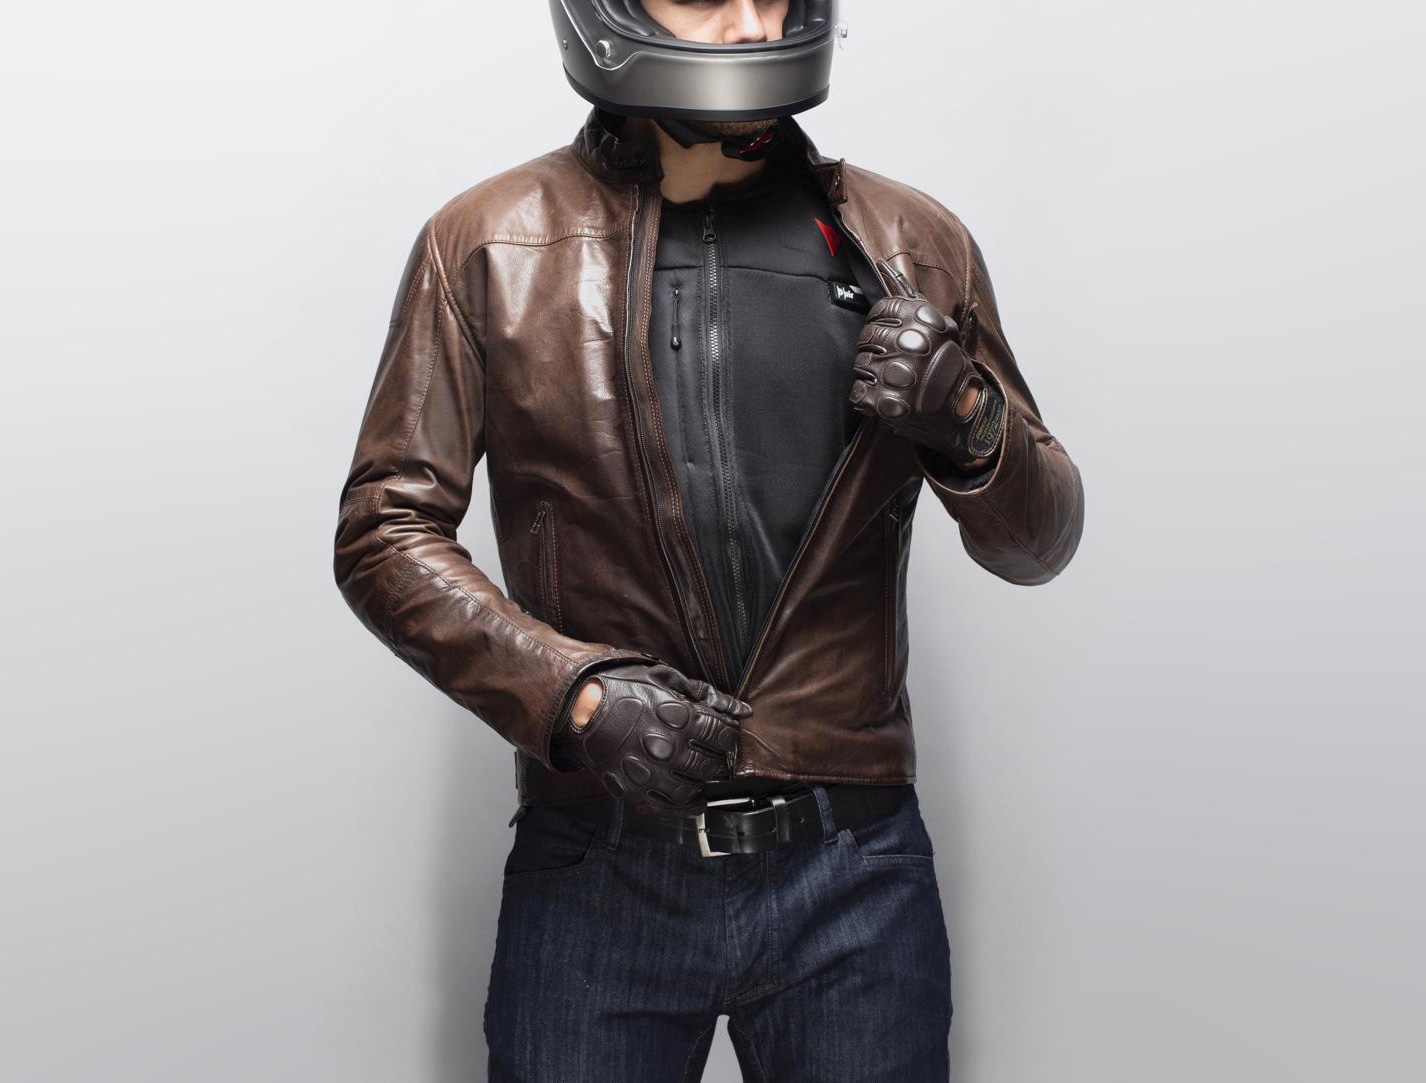 The Dainese Smart Jacket Gives Motorcyclists Maximum Protection at werd.com